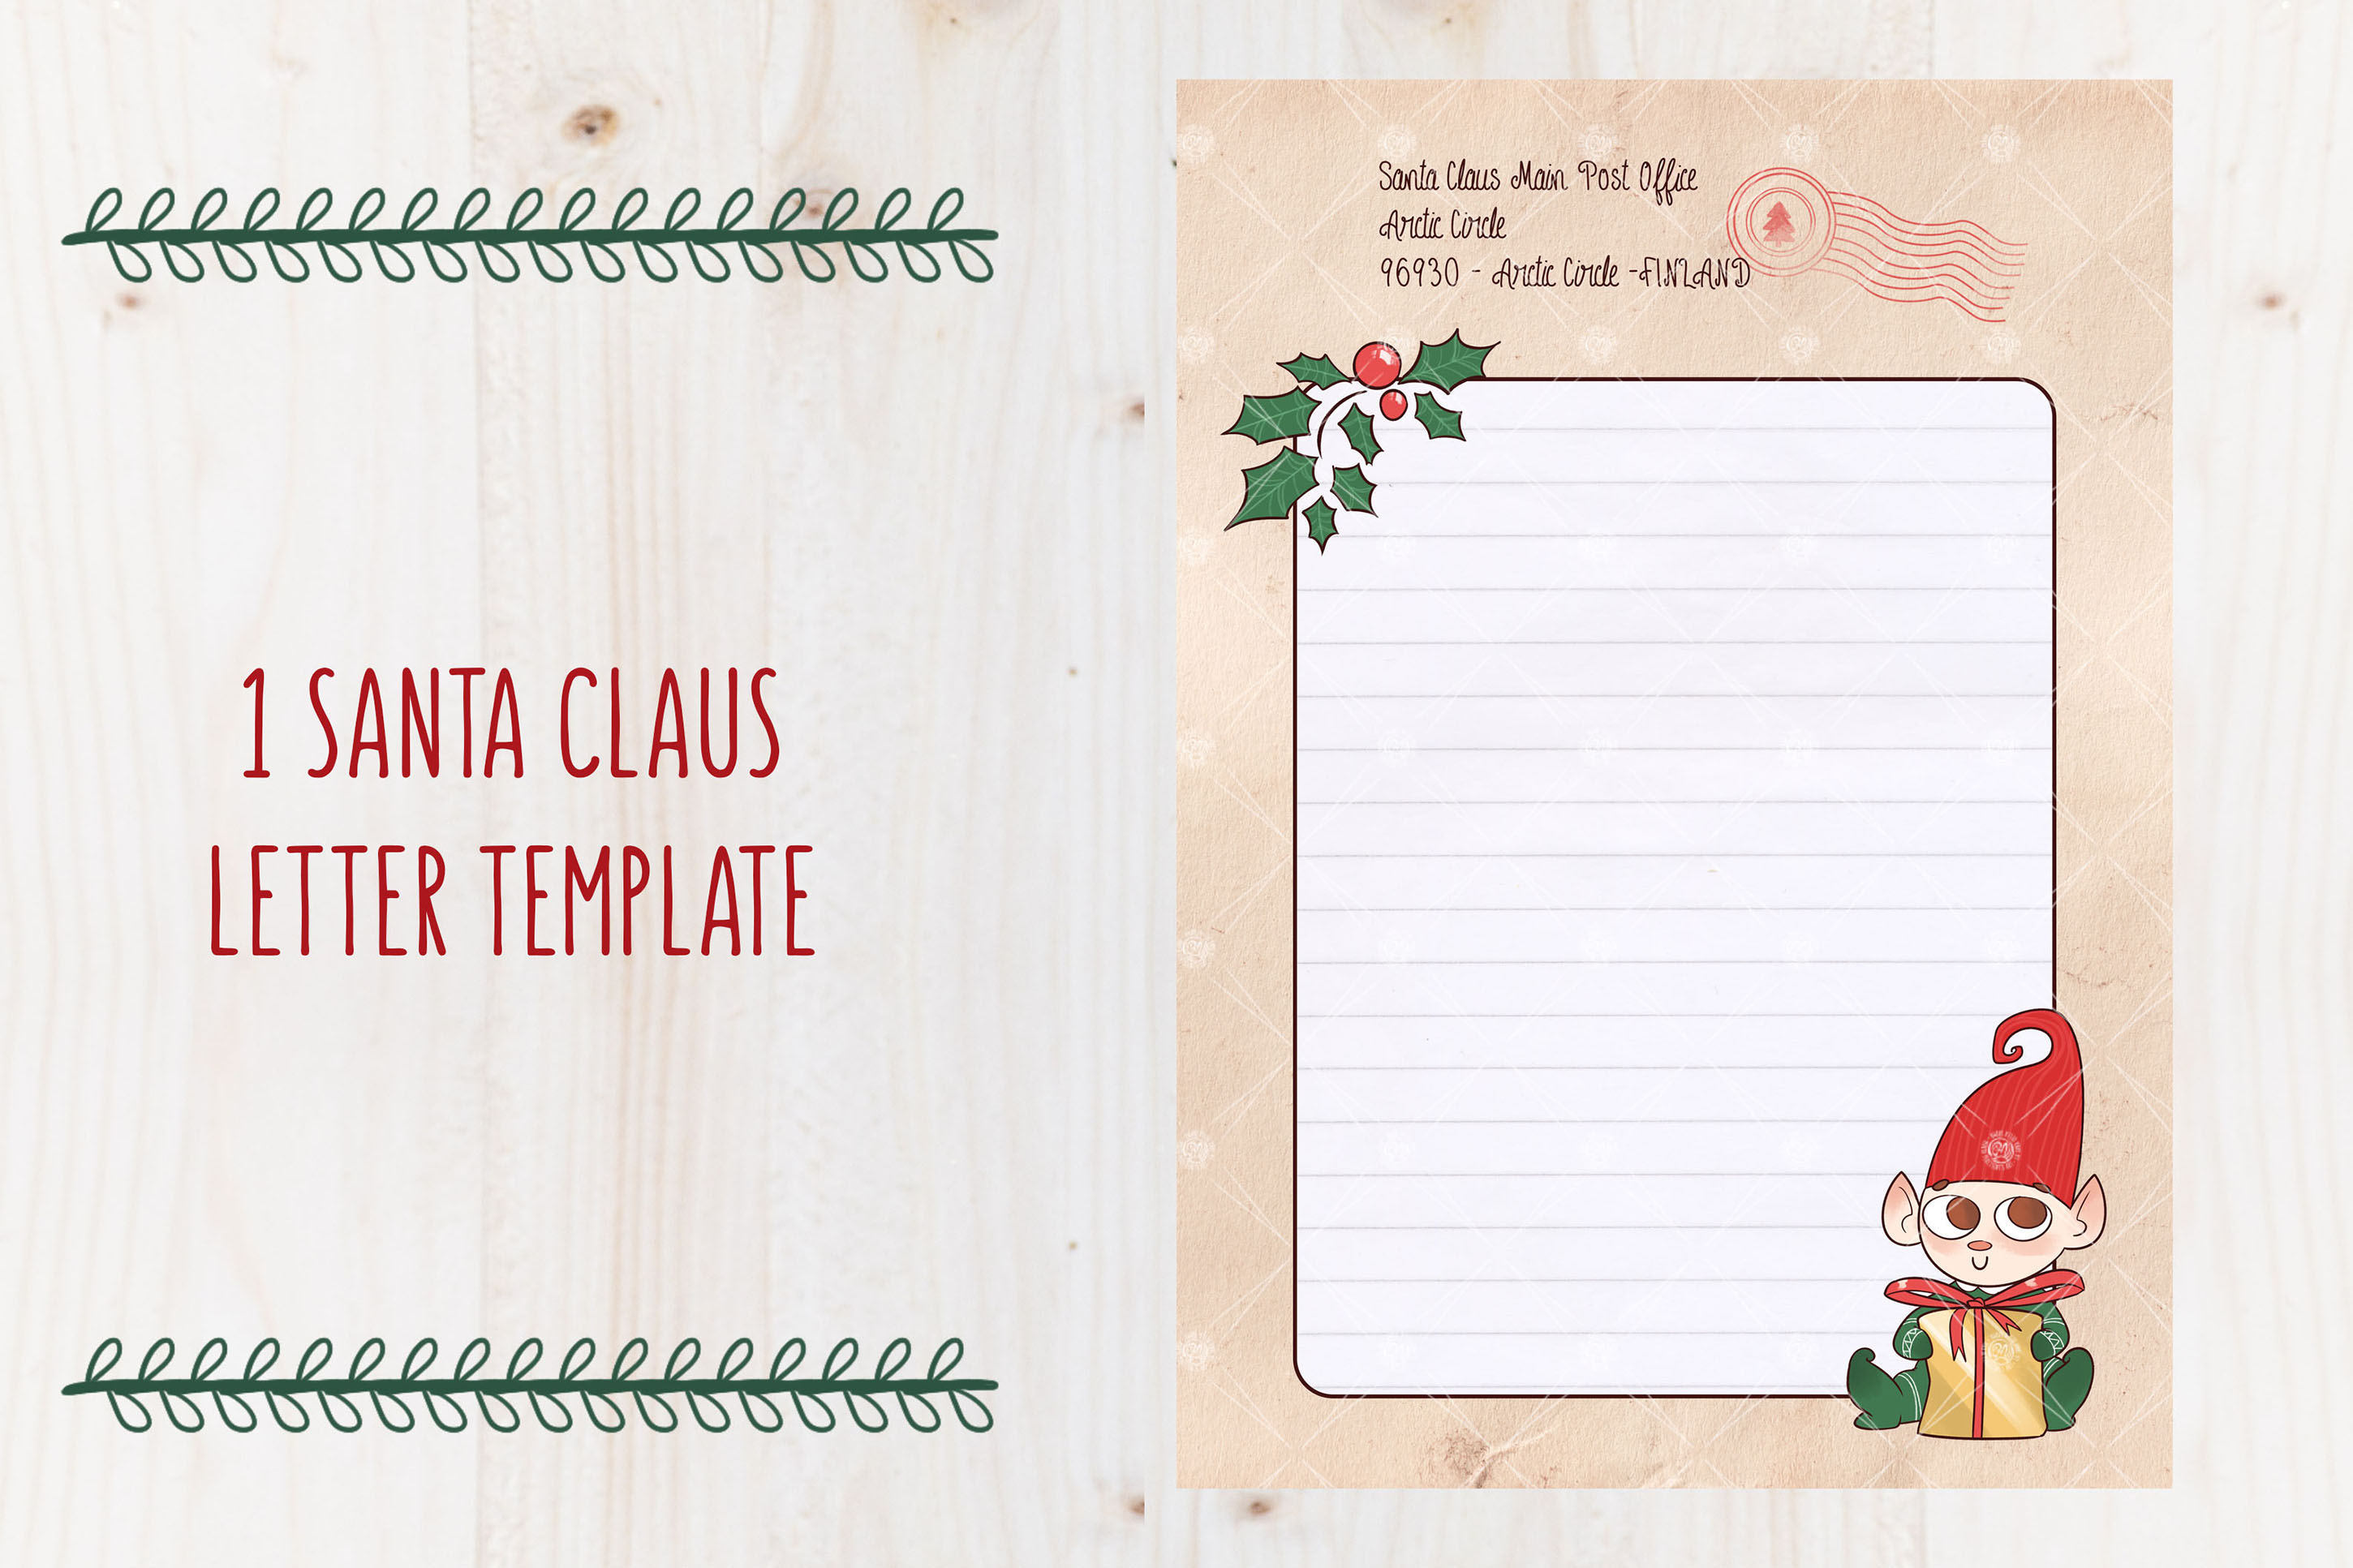 SANTA's LETTER TEMPLATE - Christmas letter by TdT example image 2